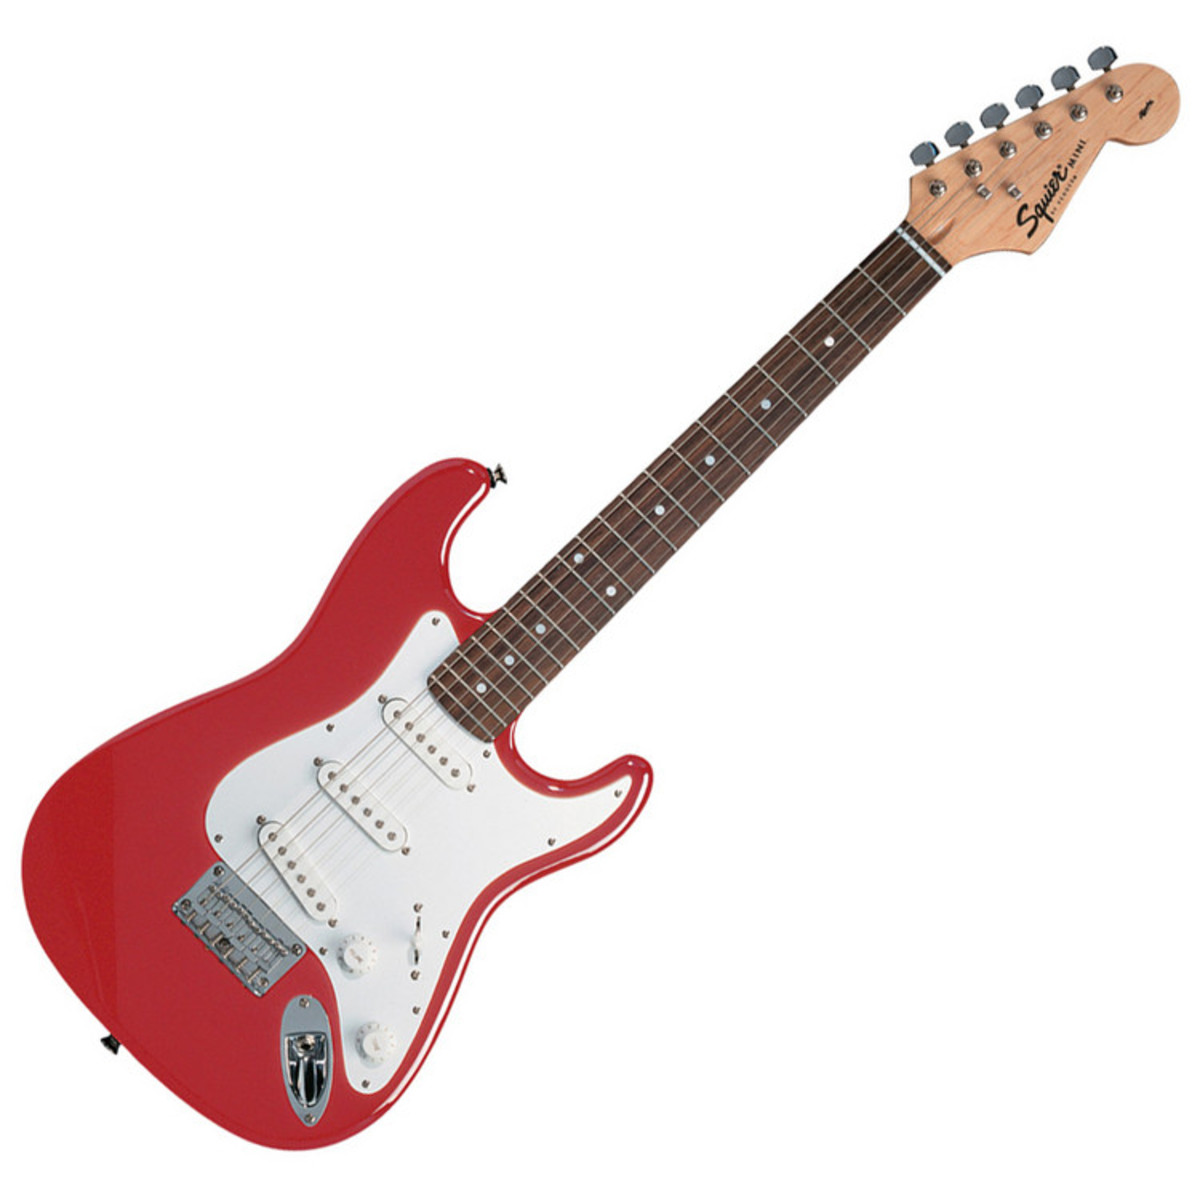 squier by fender mini strat 3 4 size electric guitar red b stock at gear4music. Black Bedroom Furniture Sets. Home Design Ideas